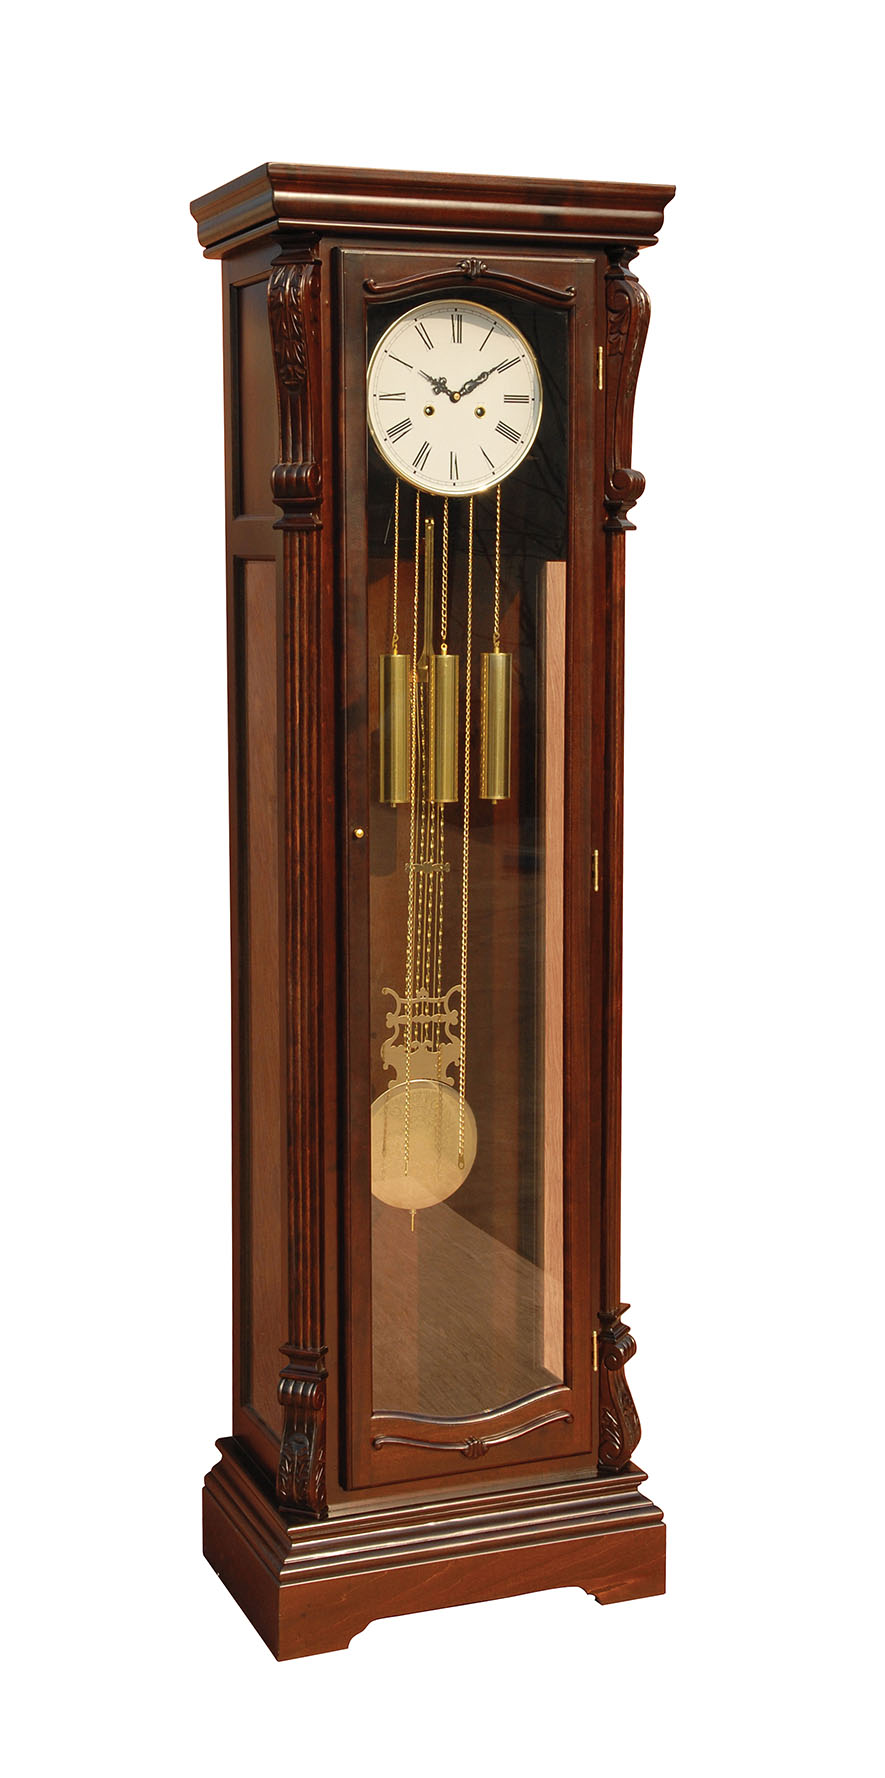 97077 Dabney Grandfather Clock D-Walnut by